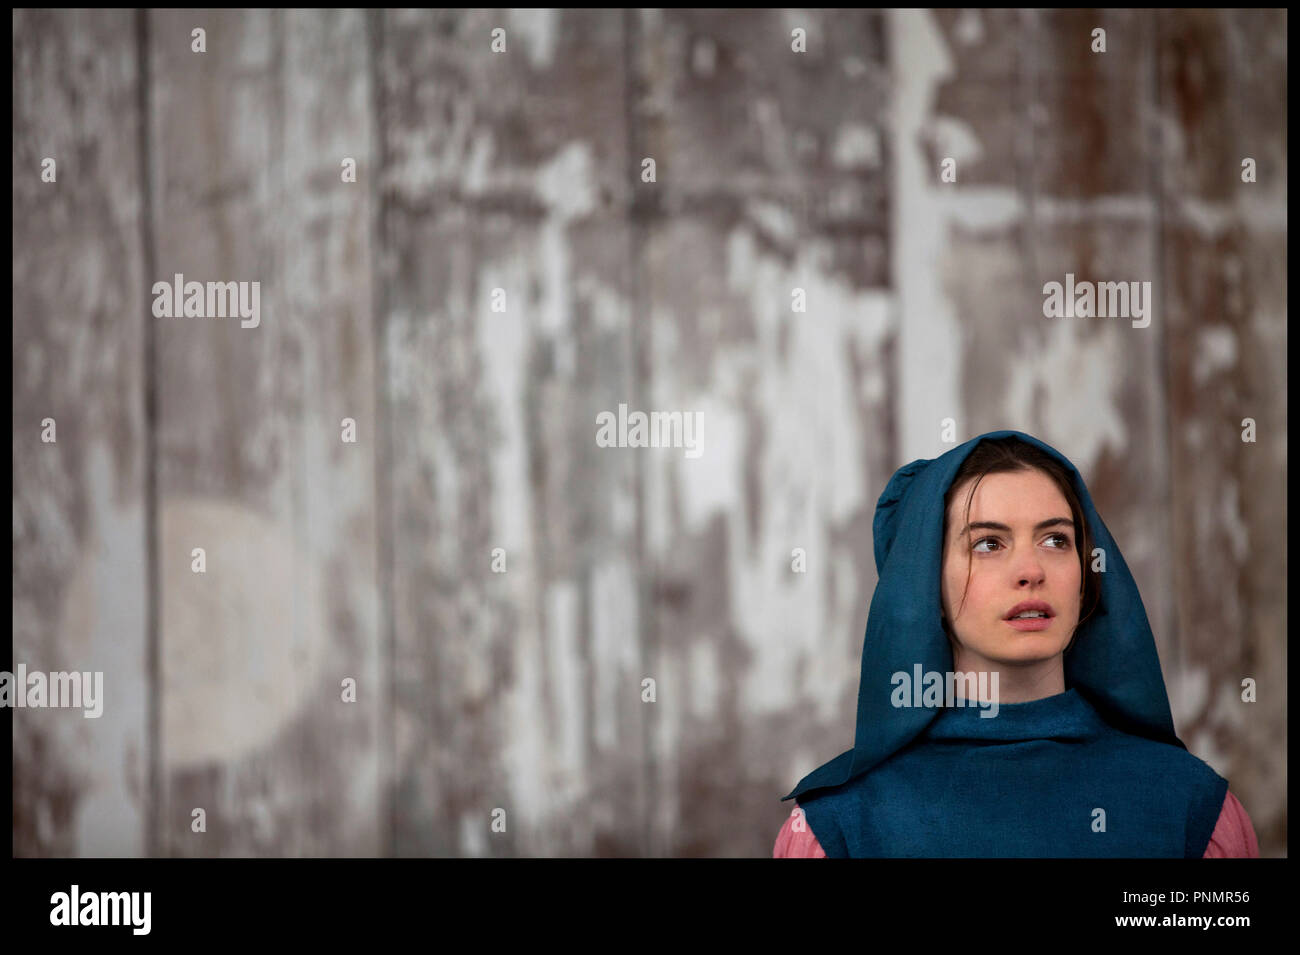 Fantine Stock Photos And Images